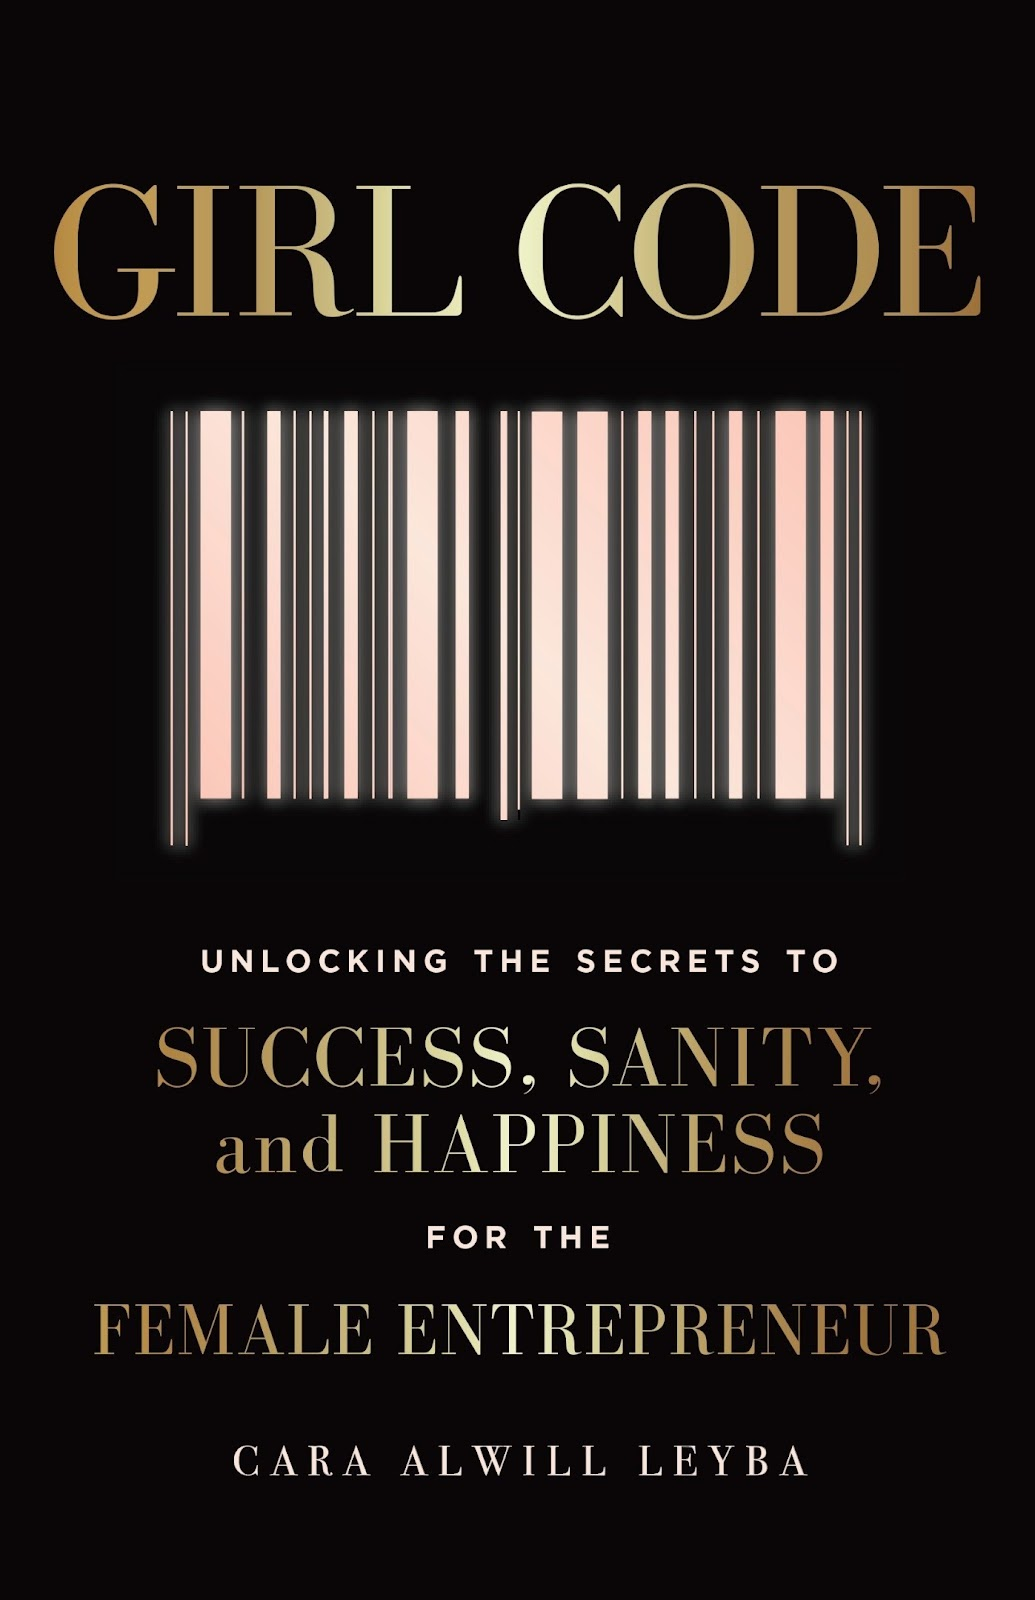 Best Book for Entrepreneurs and Marketers: Girl Code by Cara Alwill Leyba